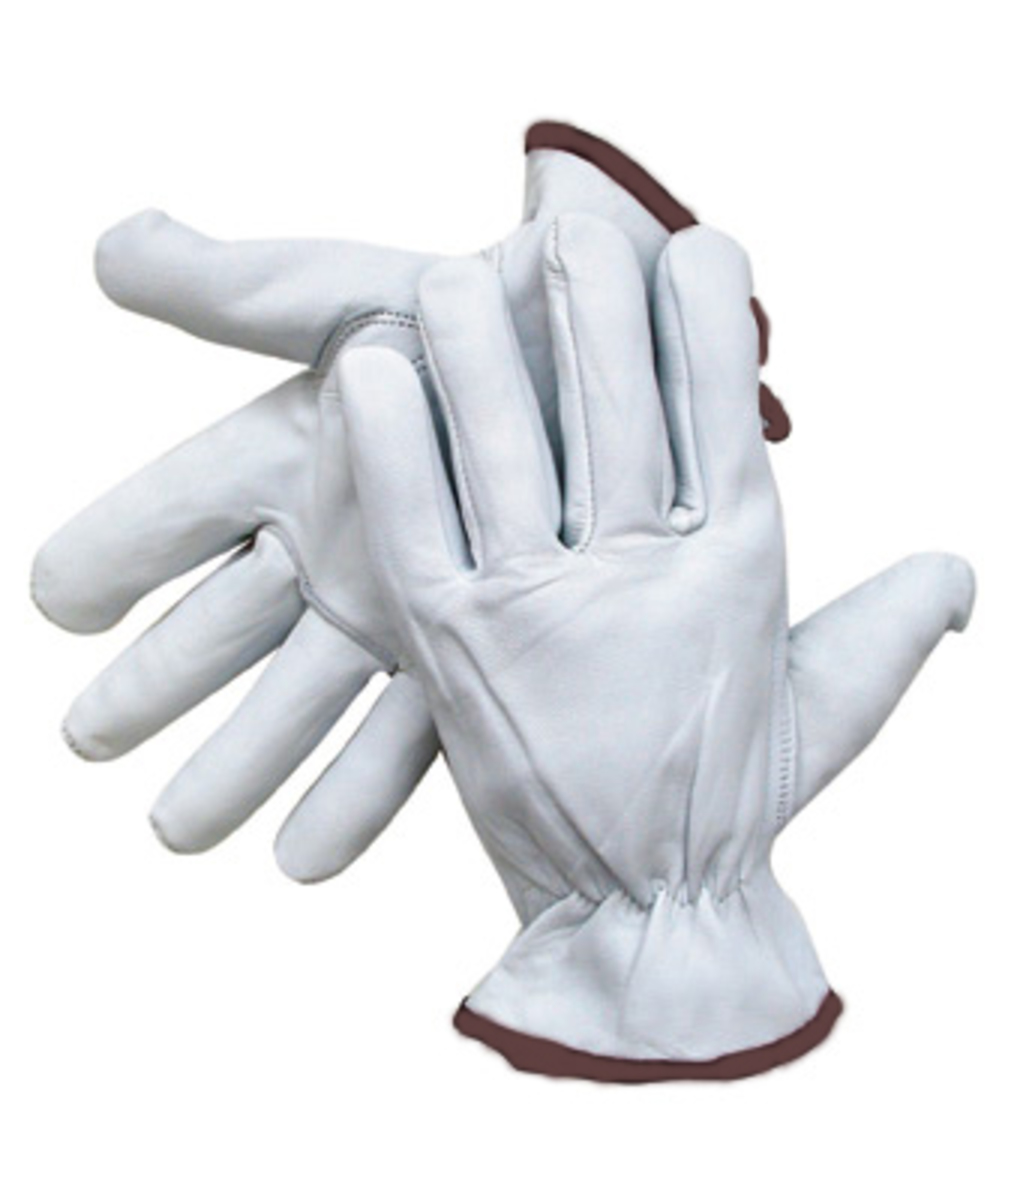 Driving gloves unlined - Radnor Large Premium Goatskin Unlined Drivers Gloves With Keystone Thumb Slip On Cuff